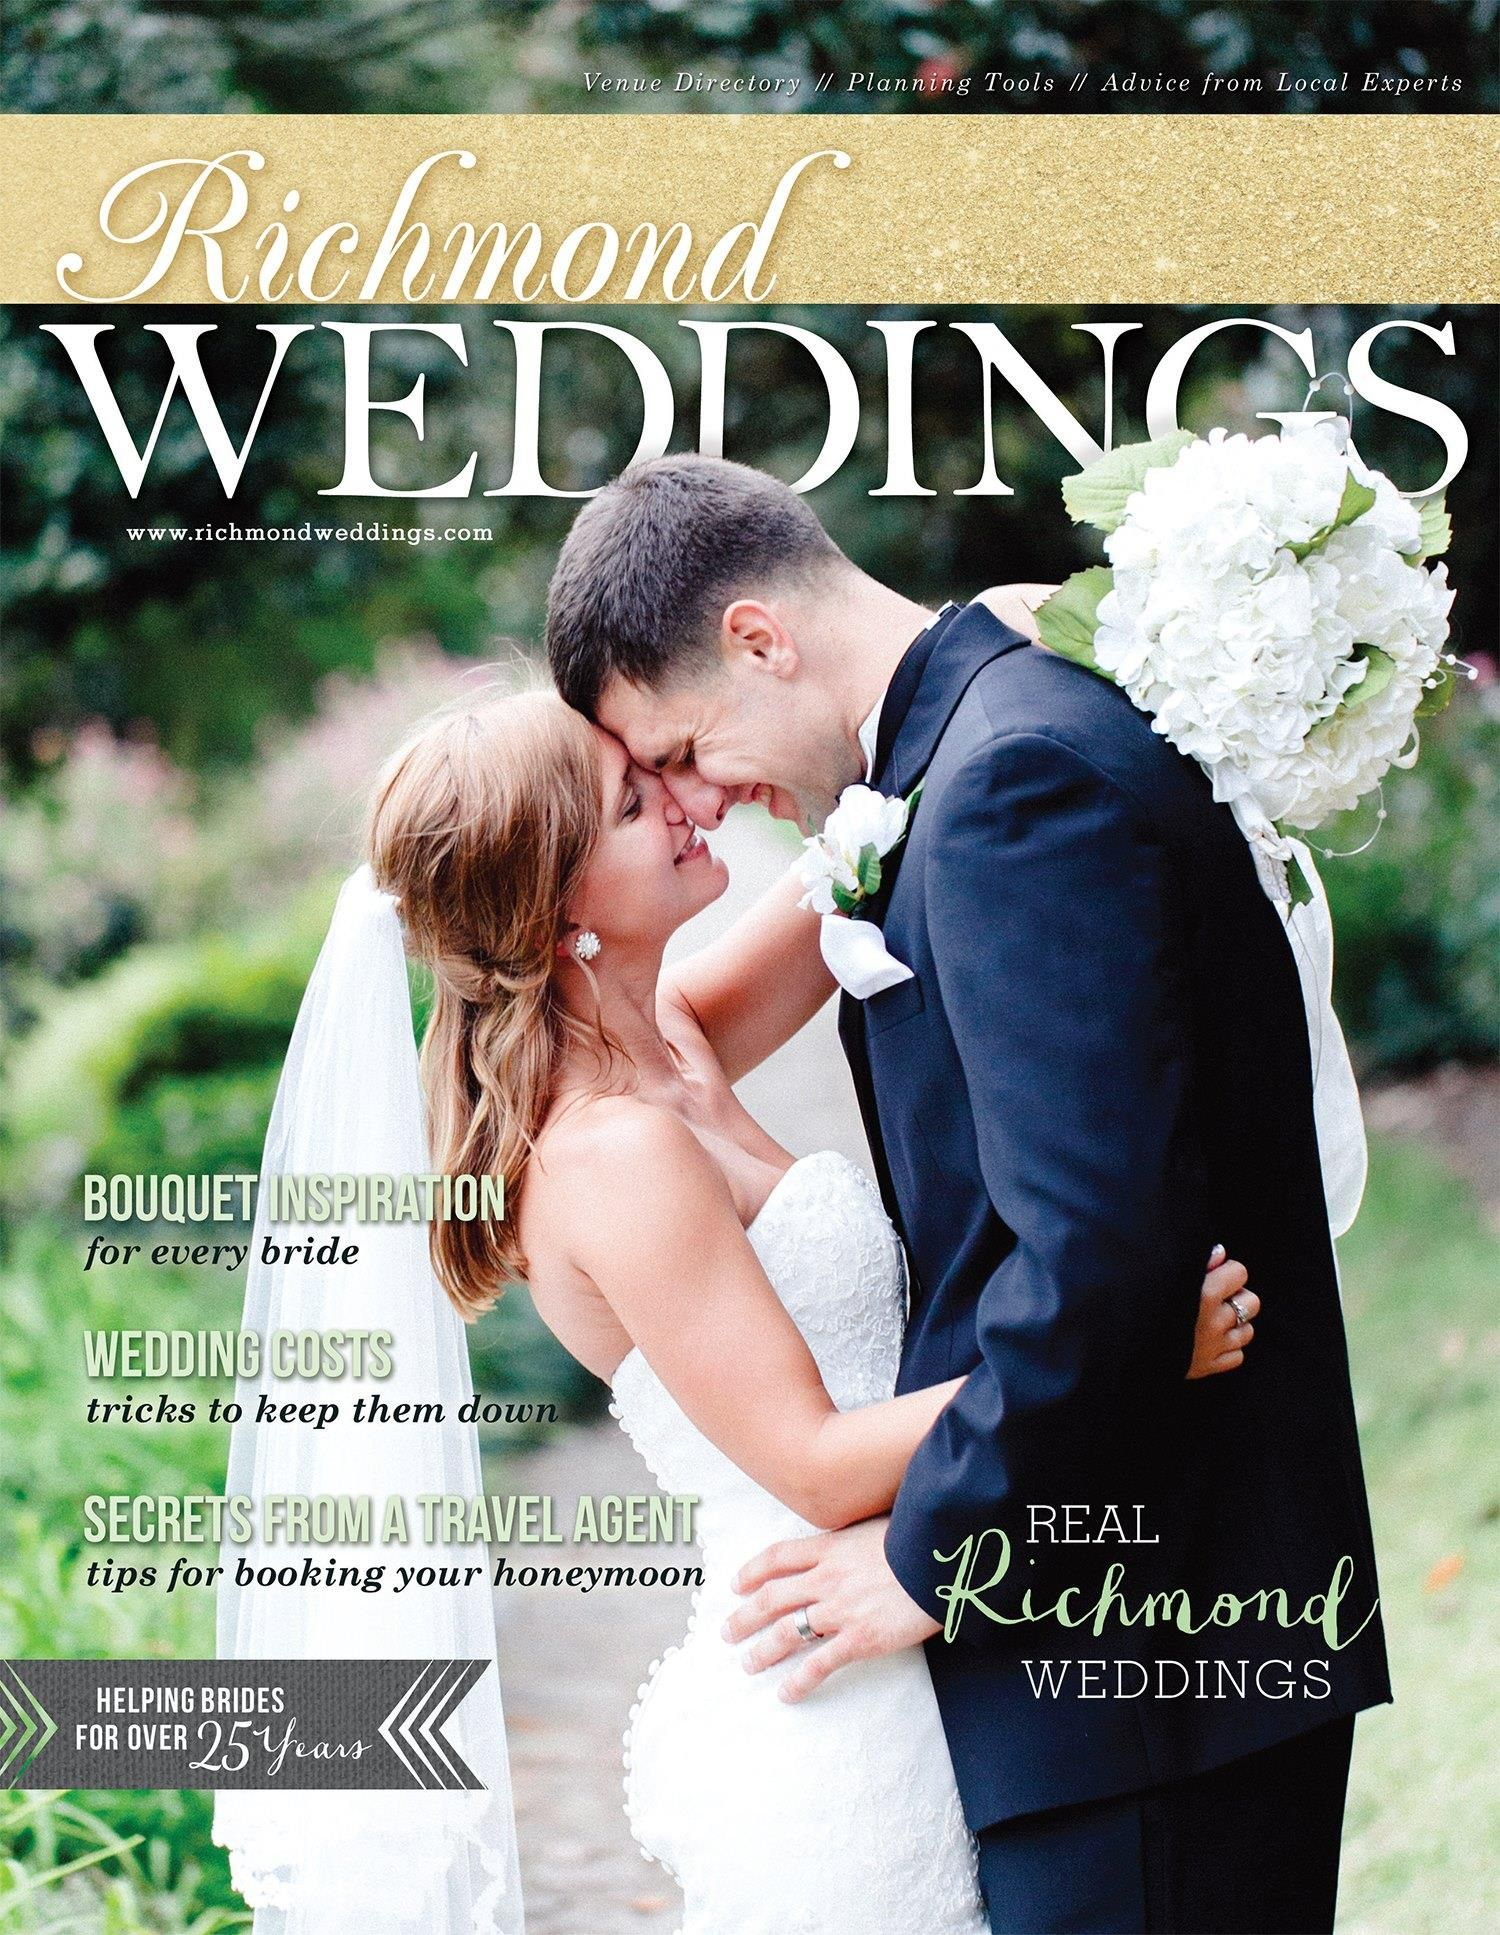 Richmond Weddings Magazine multiple client features and